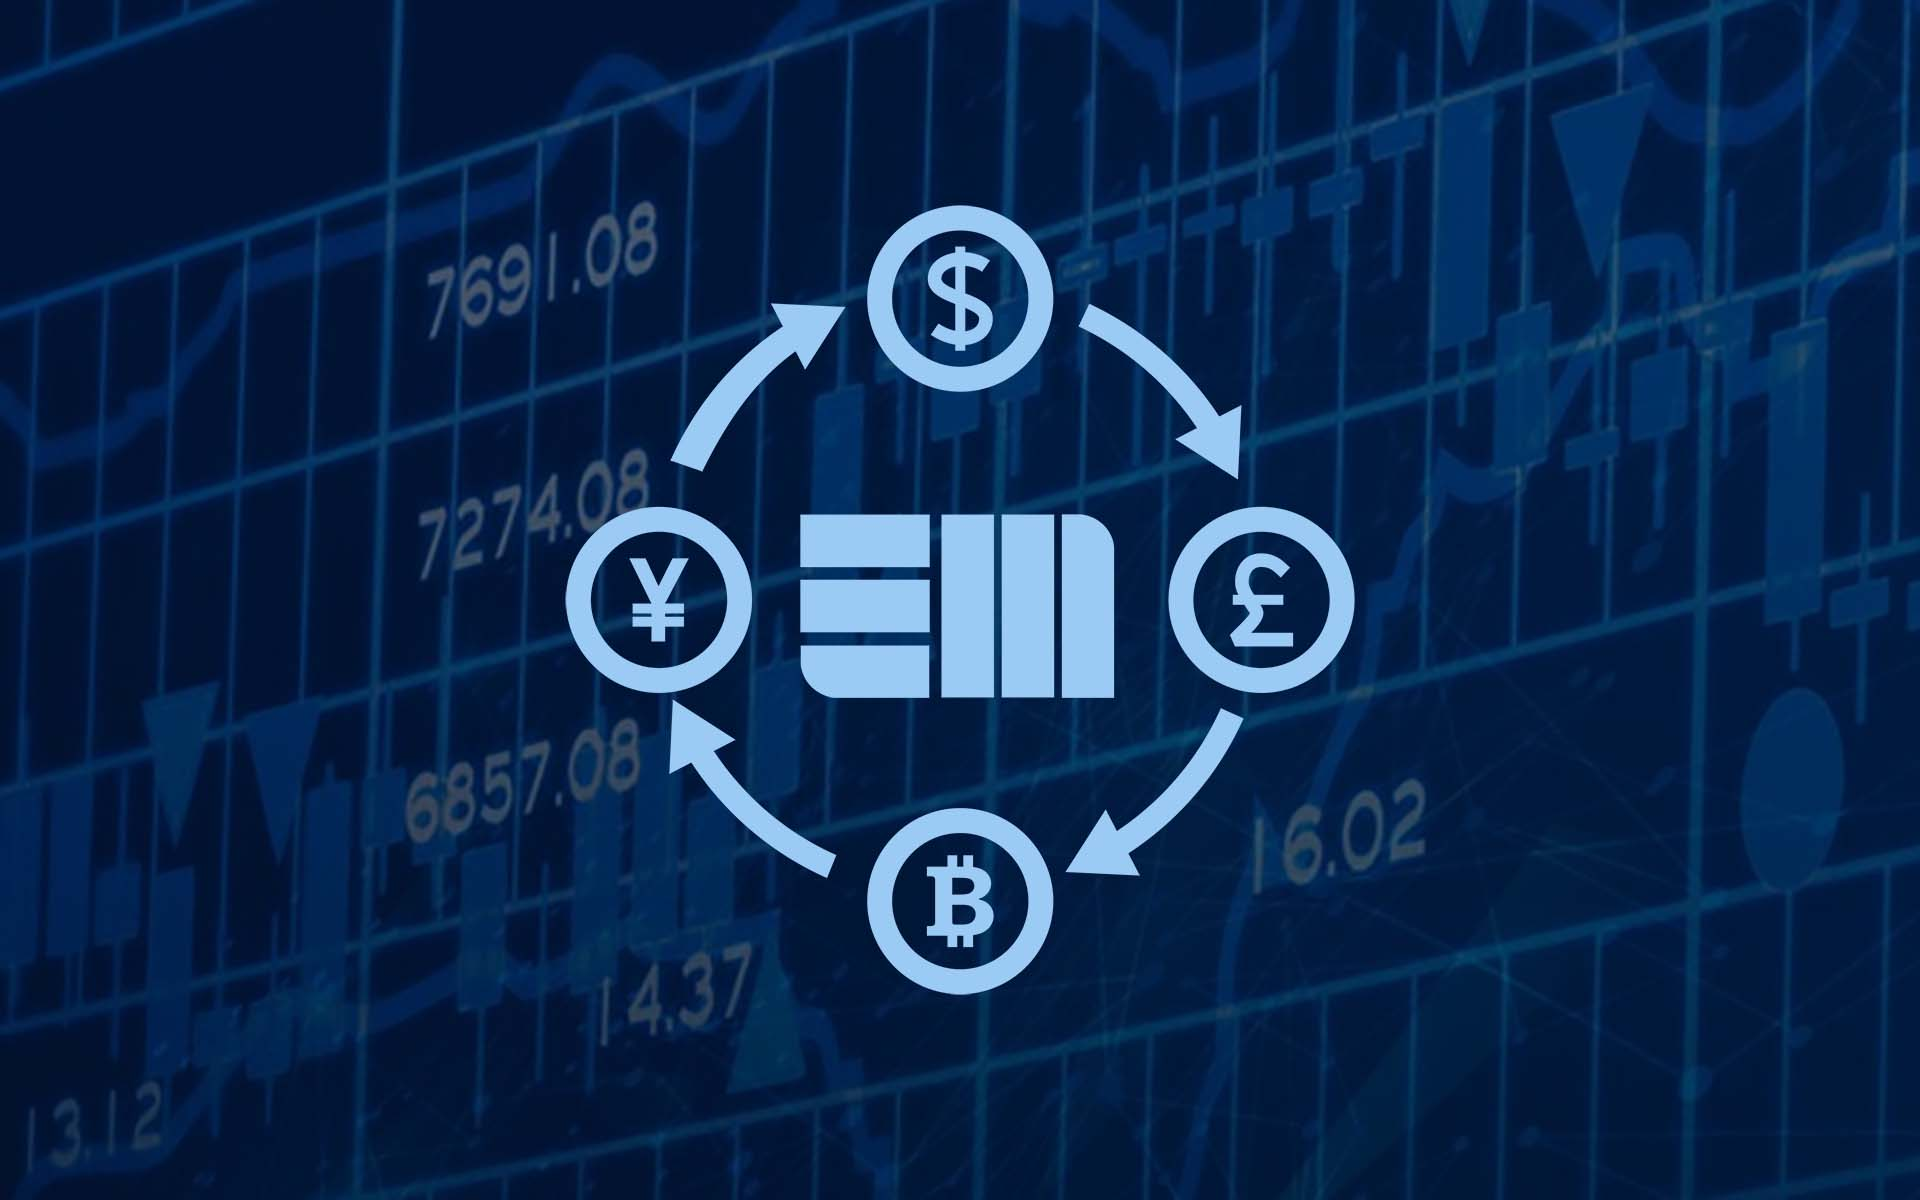 Evolve Markets Announced the Launch of 'The Box', An FX and Metals Matching Engine